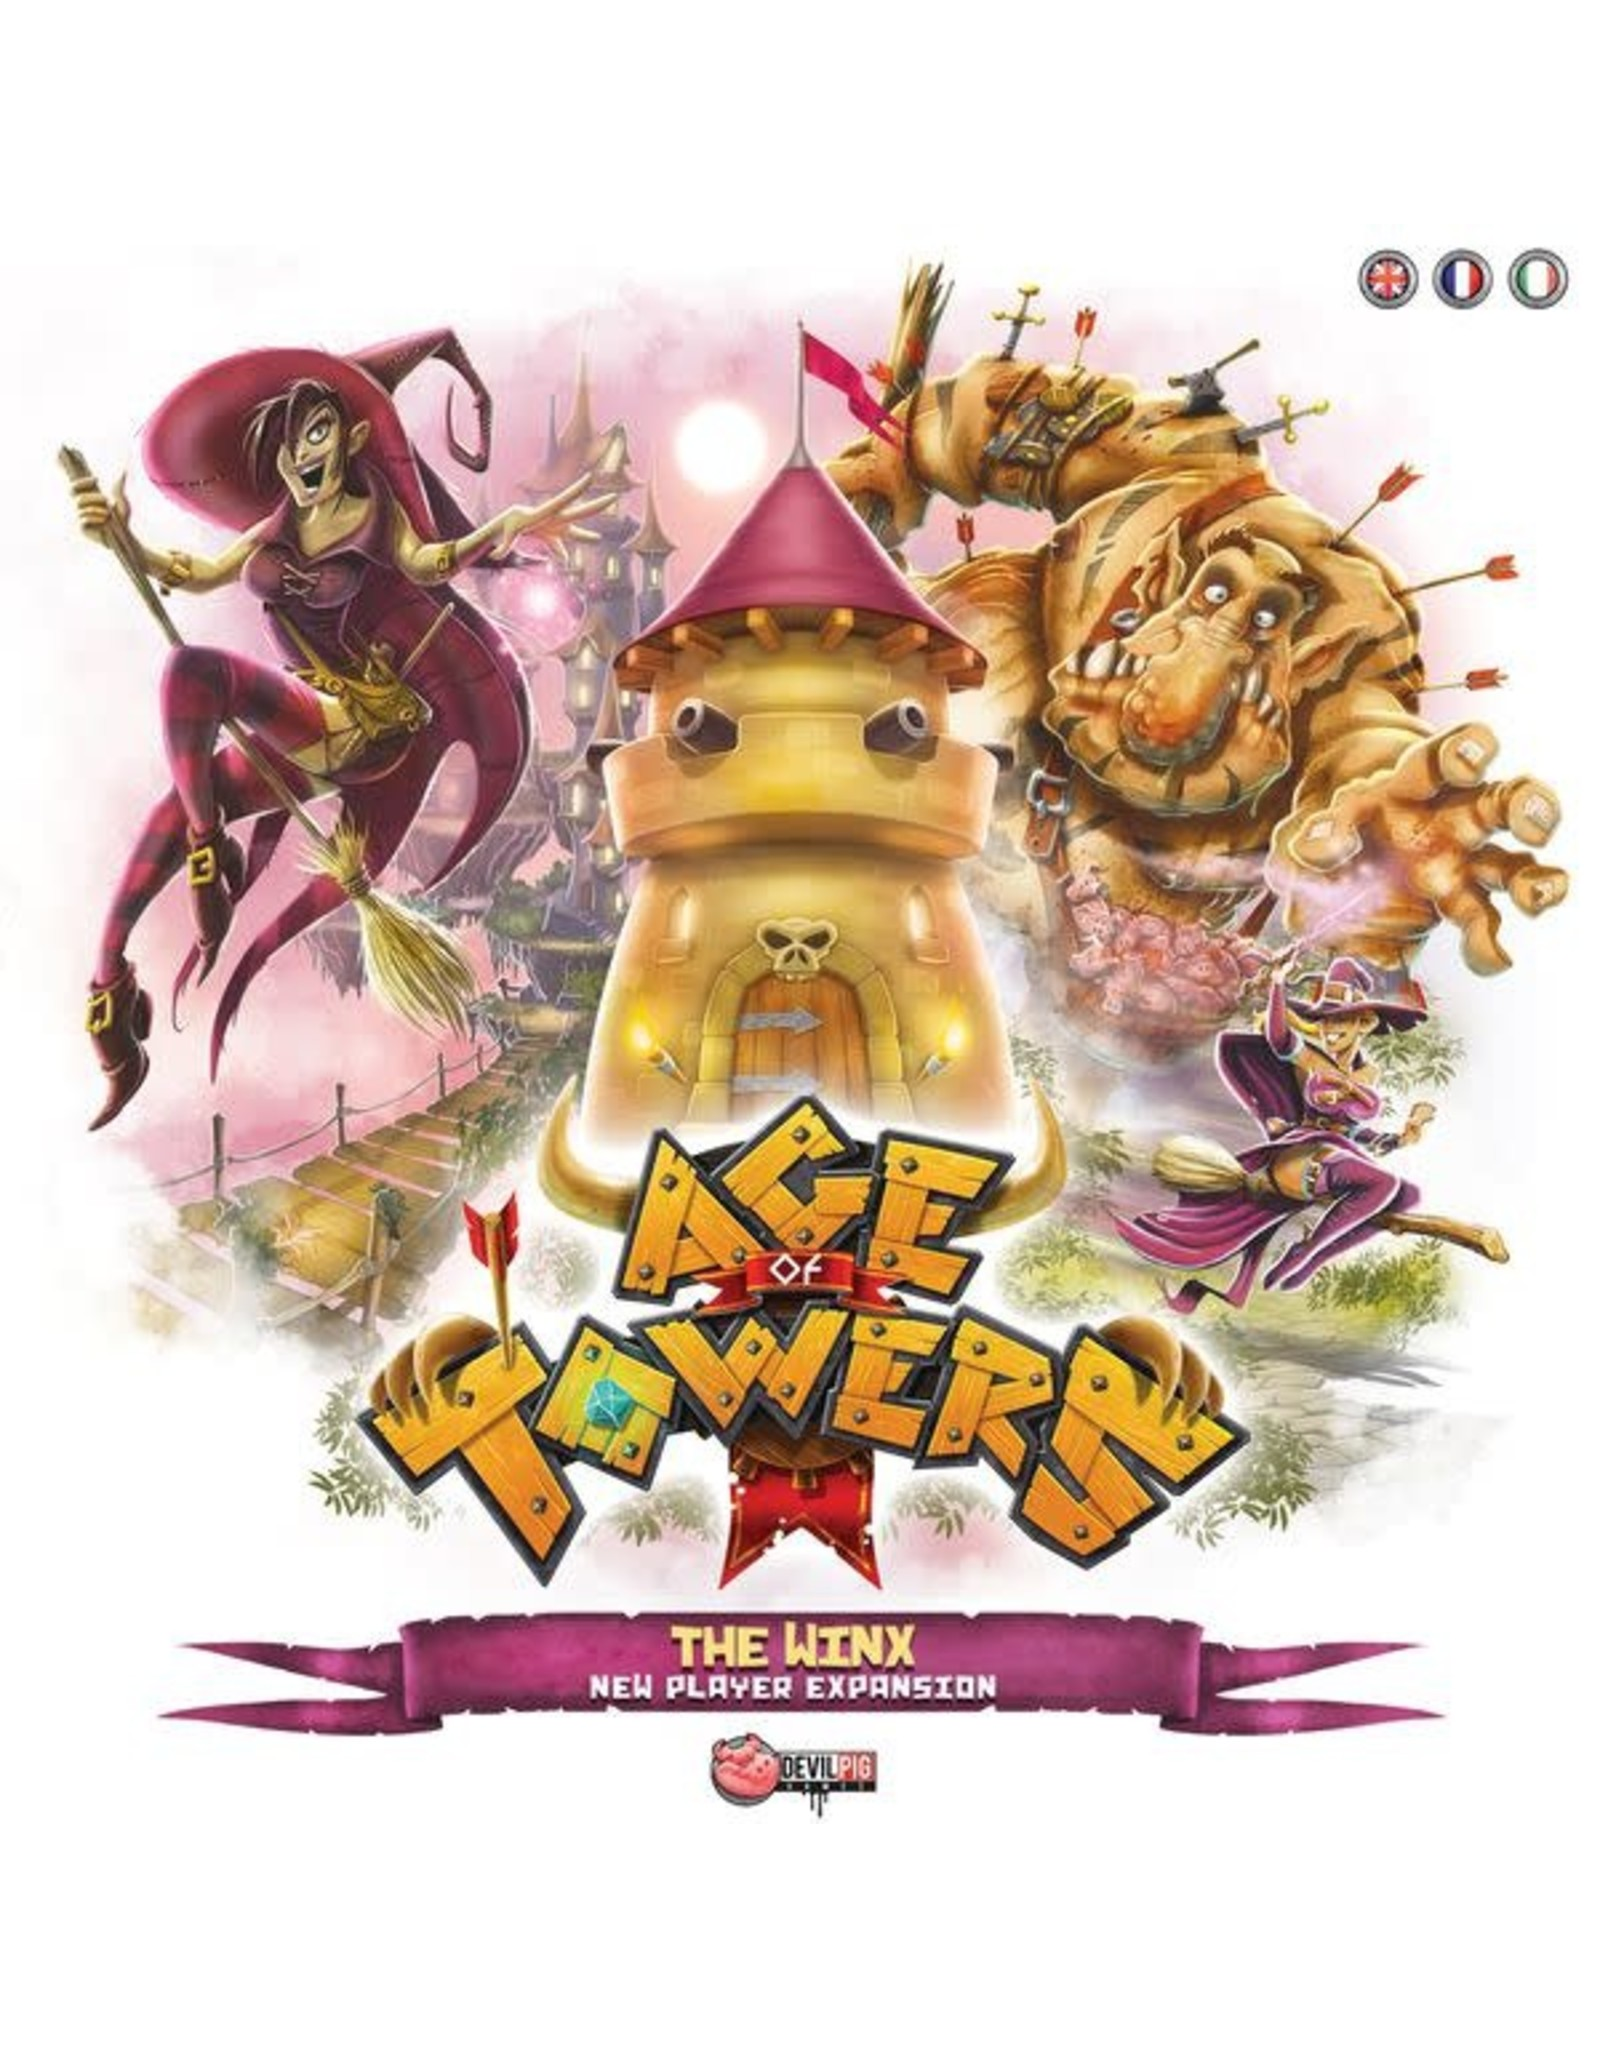 Devil Pigs AGE OF TOWERS: THE WINX